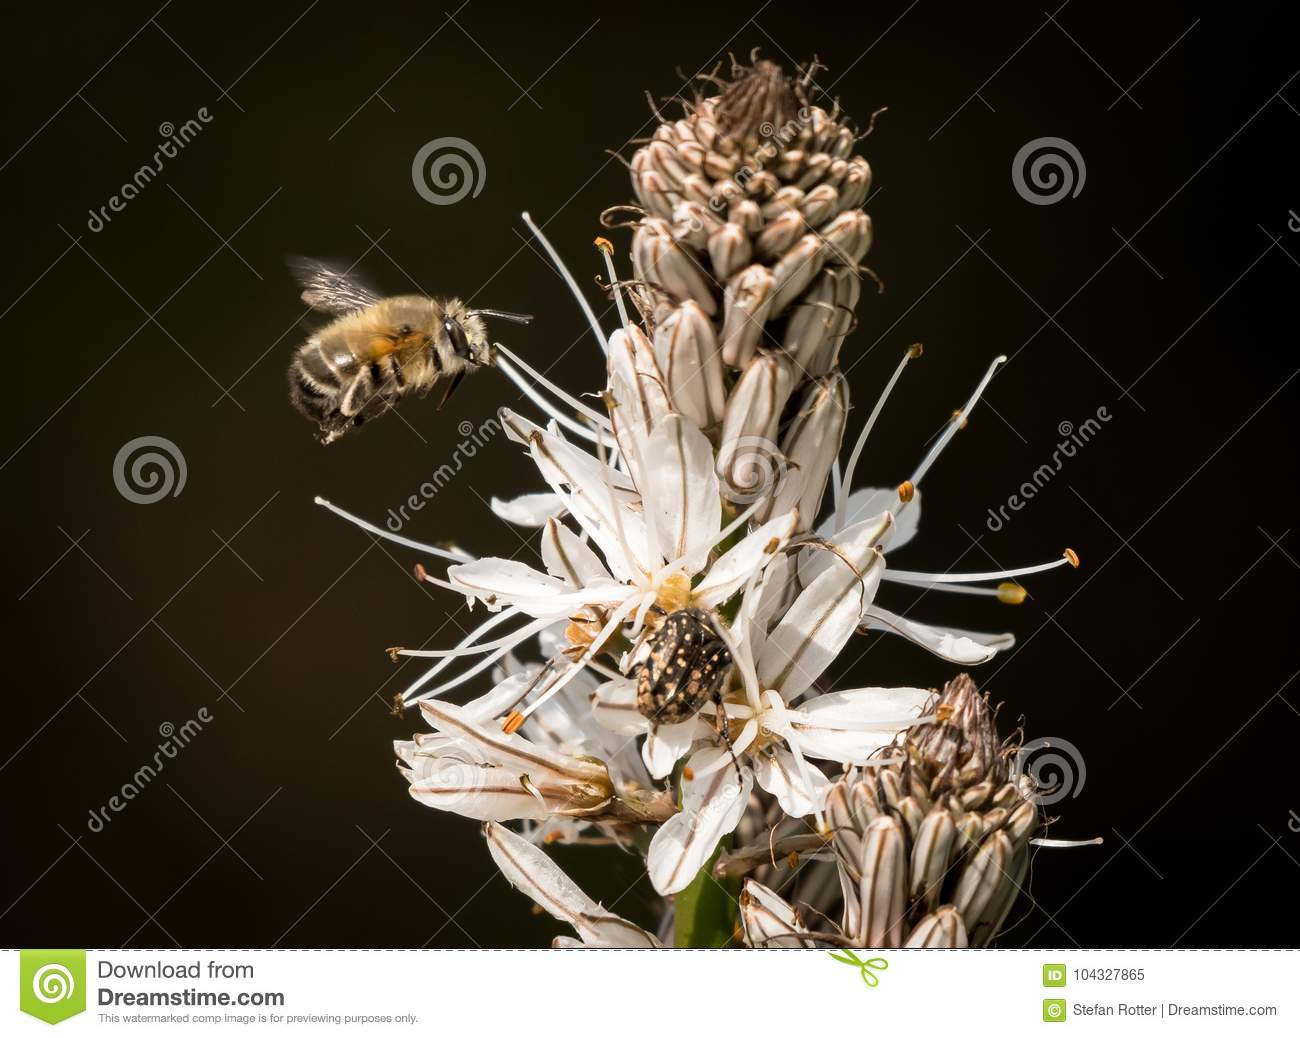 Closeup of a bumble bee approaching the white blossoms of Asphodelus